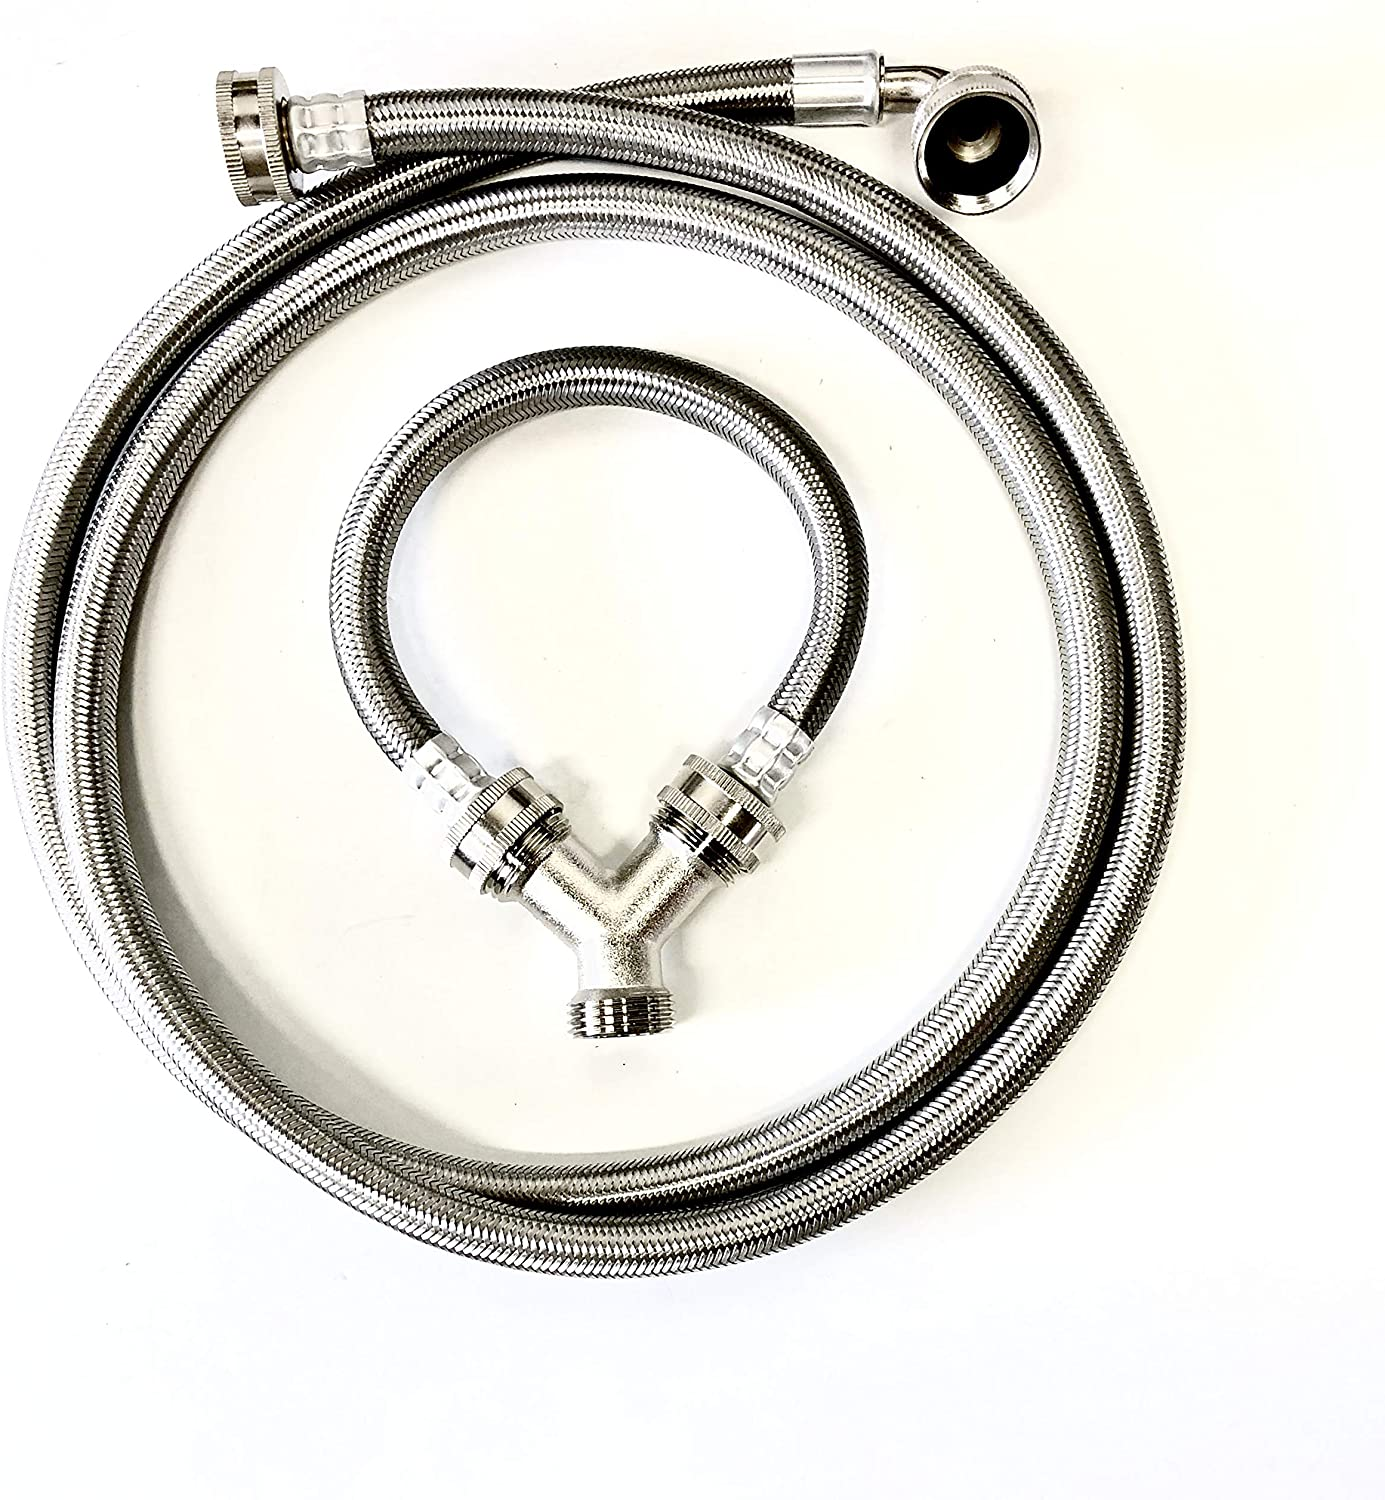 "Shark Industrial Steam Dryer Installation Kit - 6FT Stainless Steel Braided Hose with 3/4"" FHT 90 Degree Elbow and 1FT Inlet Hose 3/4"" FHT with Y-adapter"